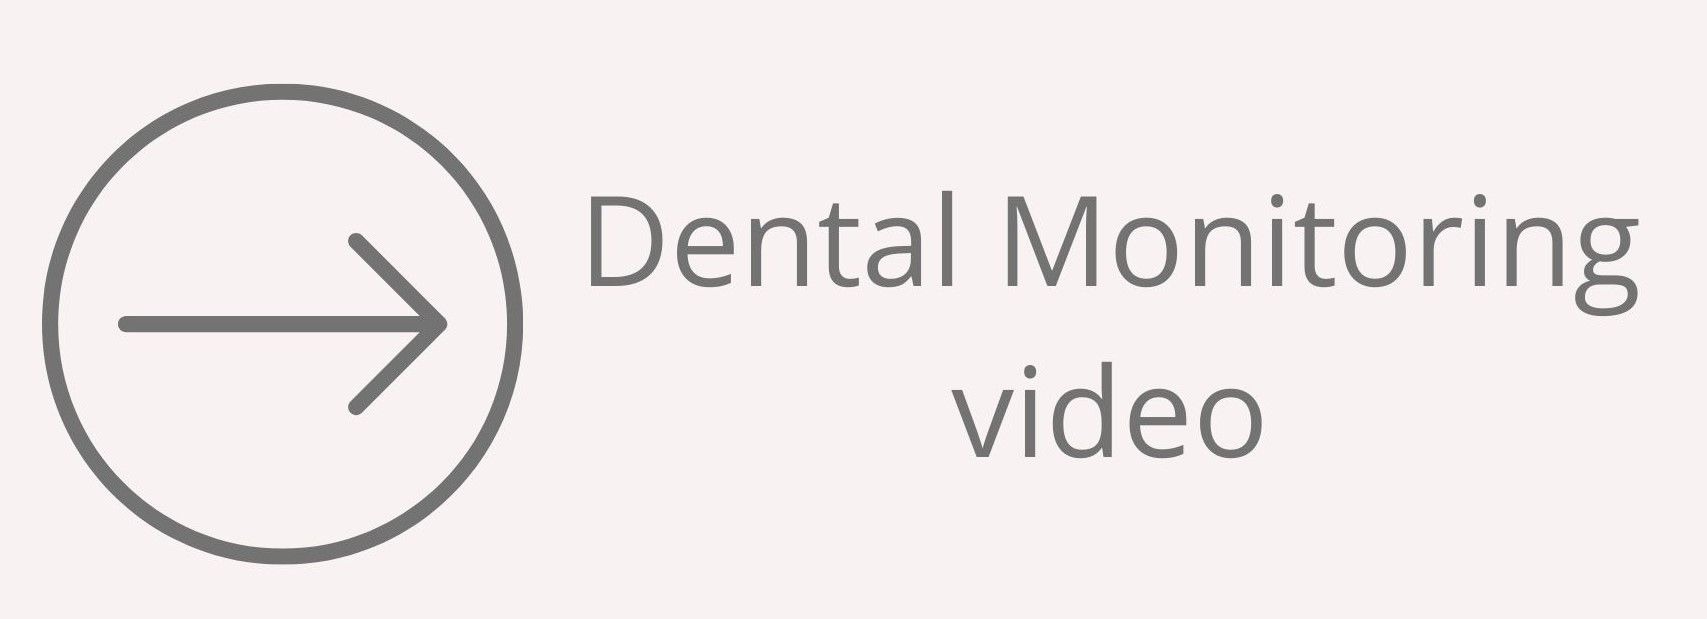 Dental Monitoring video